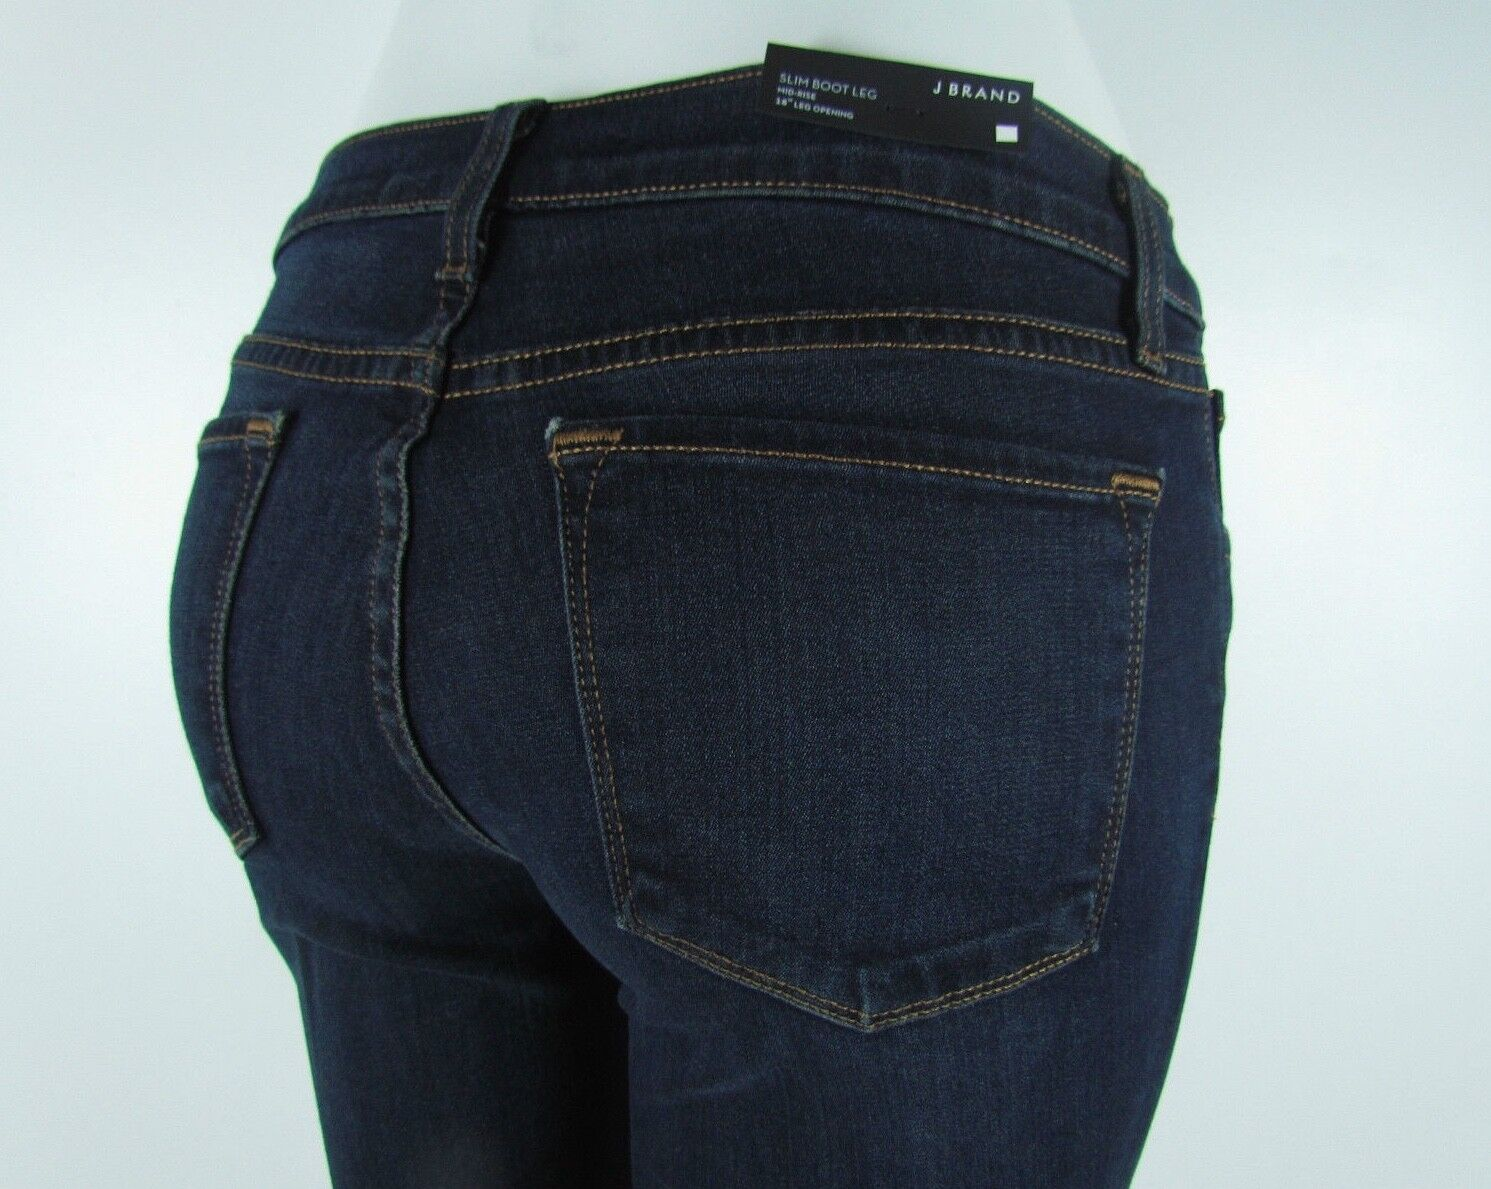 New J BRAND 818 SLIM BOOTCUT Mid Rise Woman Jeans SZ 25 in VERUCA DARK blueE